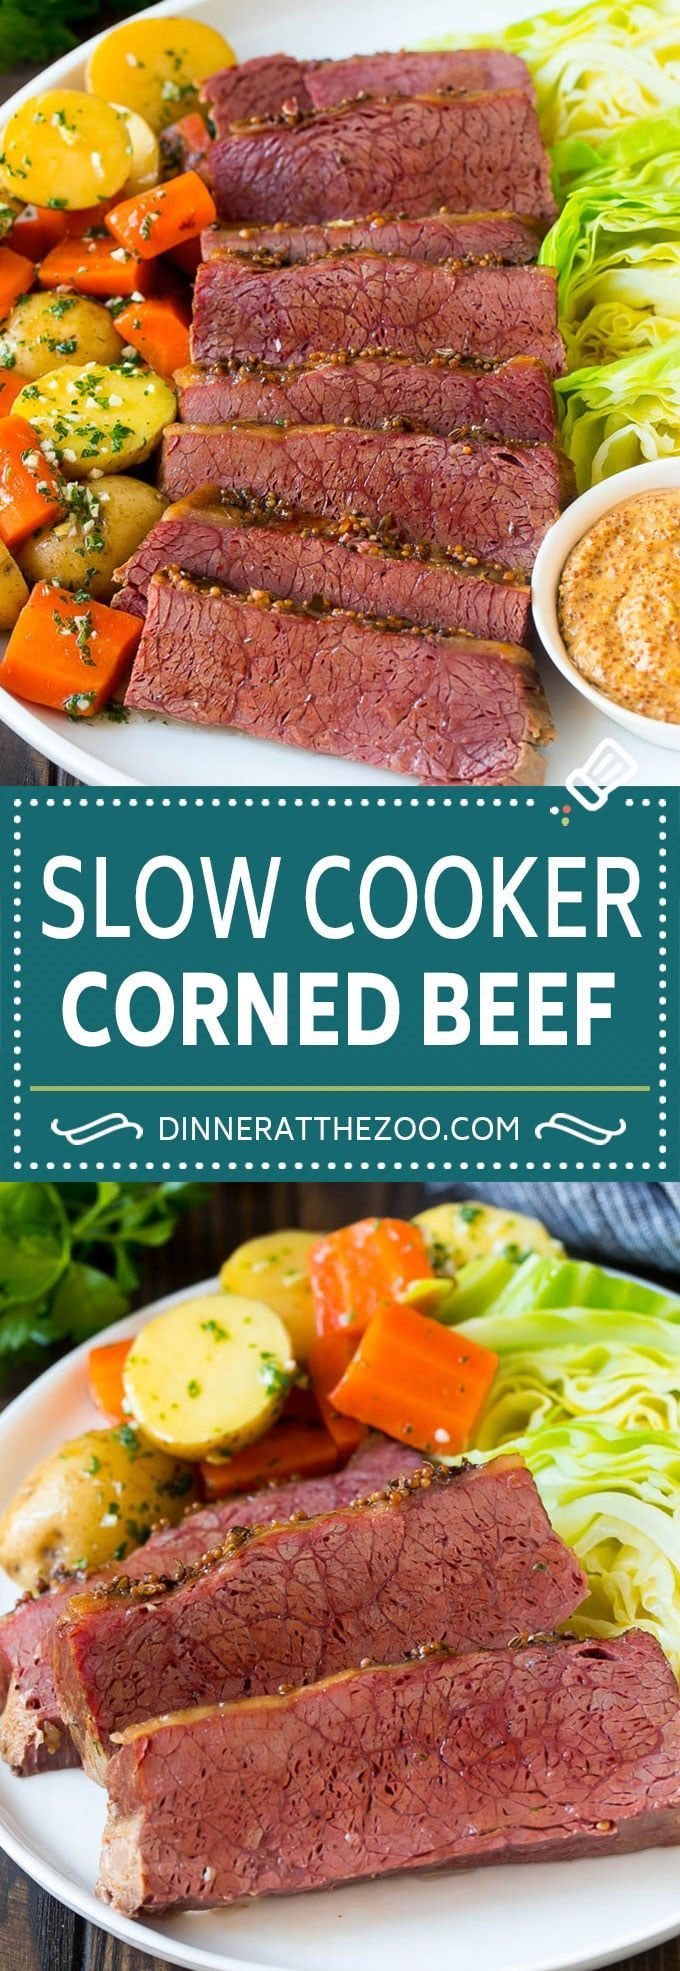 Photo of Slow Cooker Corned Beef and Cabbage